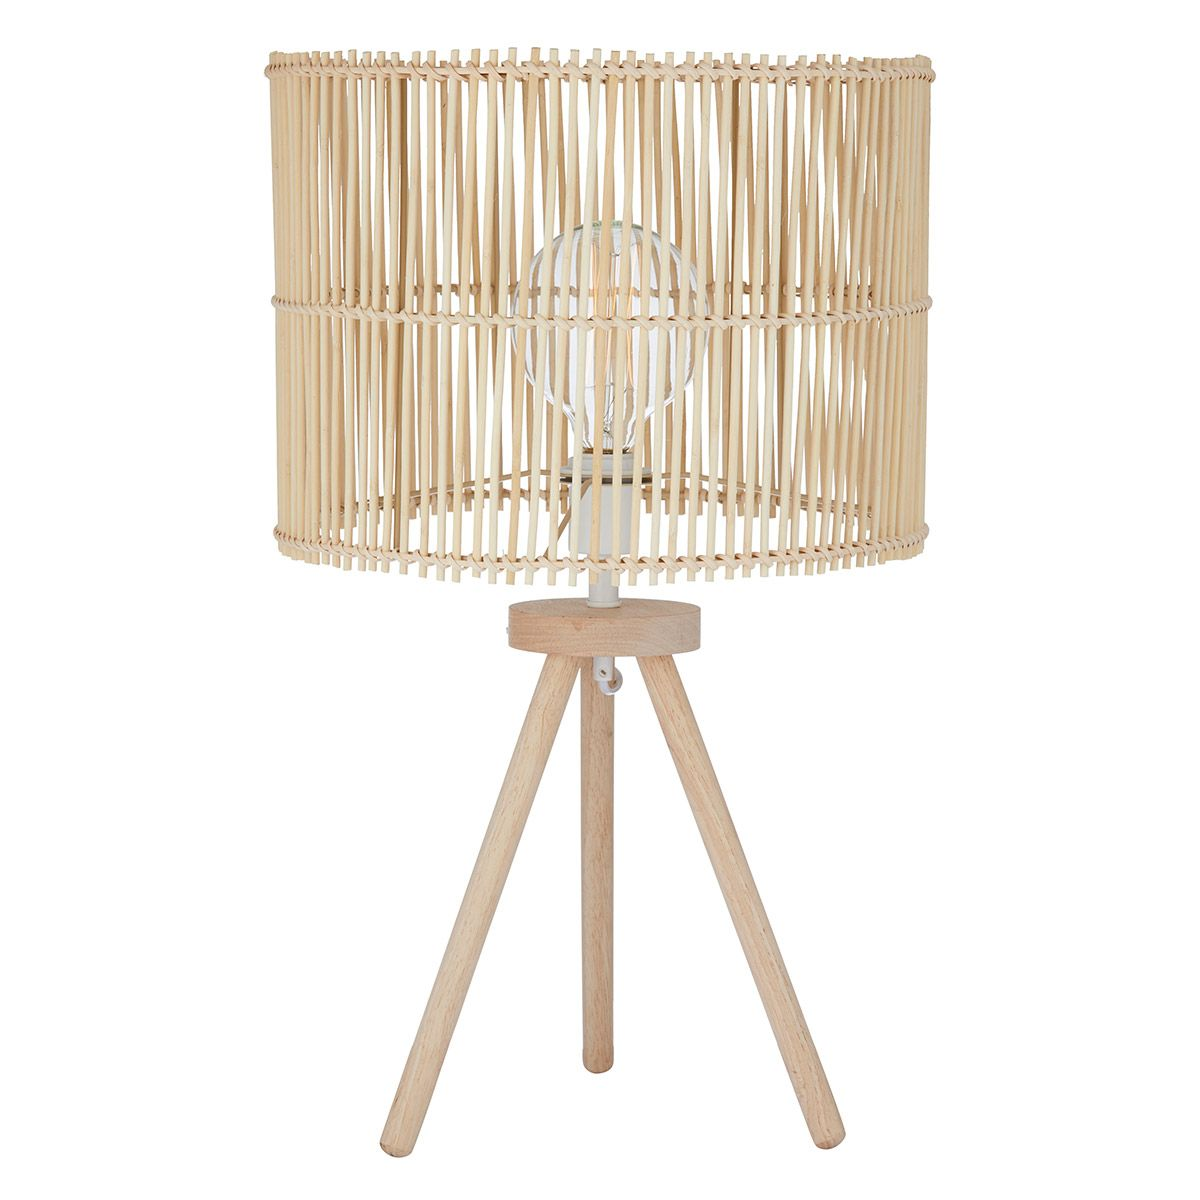 GD Shoreham Table Lamp by Oz Design Furniture, a Table & Bedside Lamps for sale on Style Sourcebook